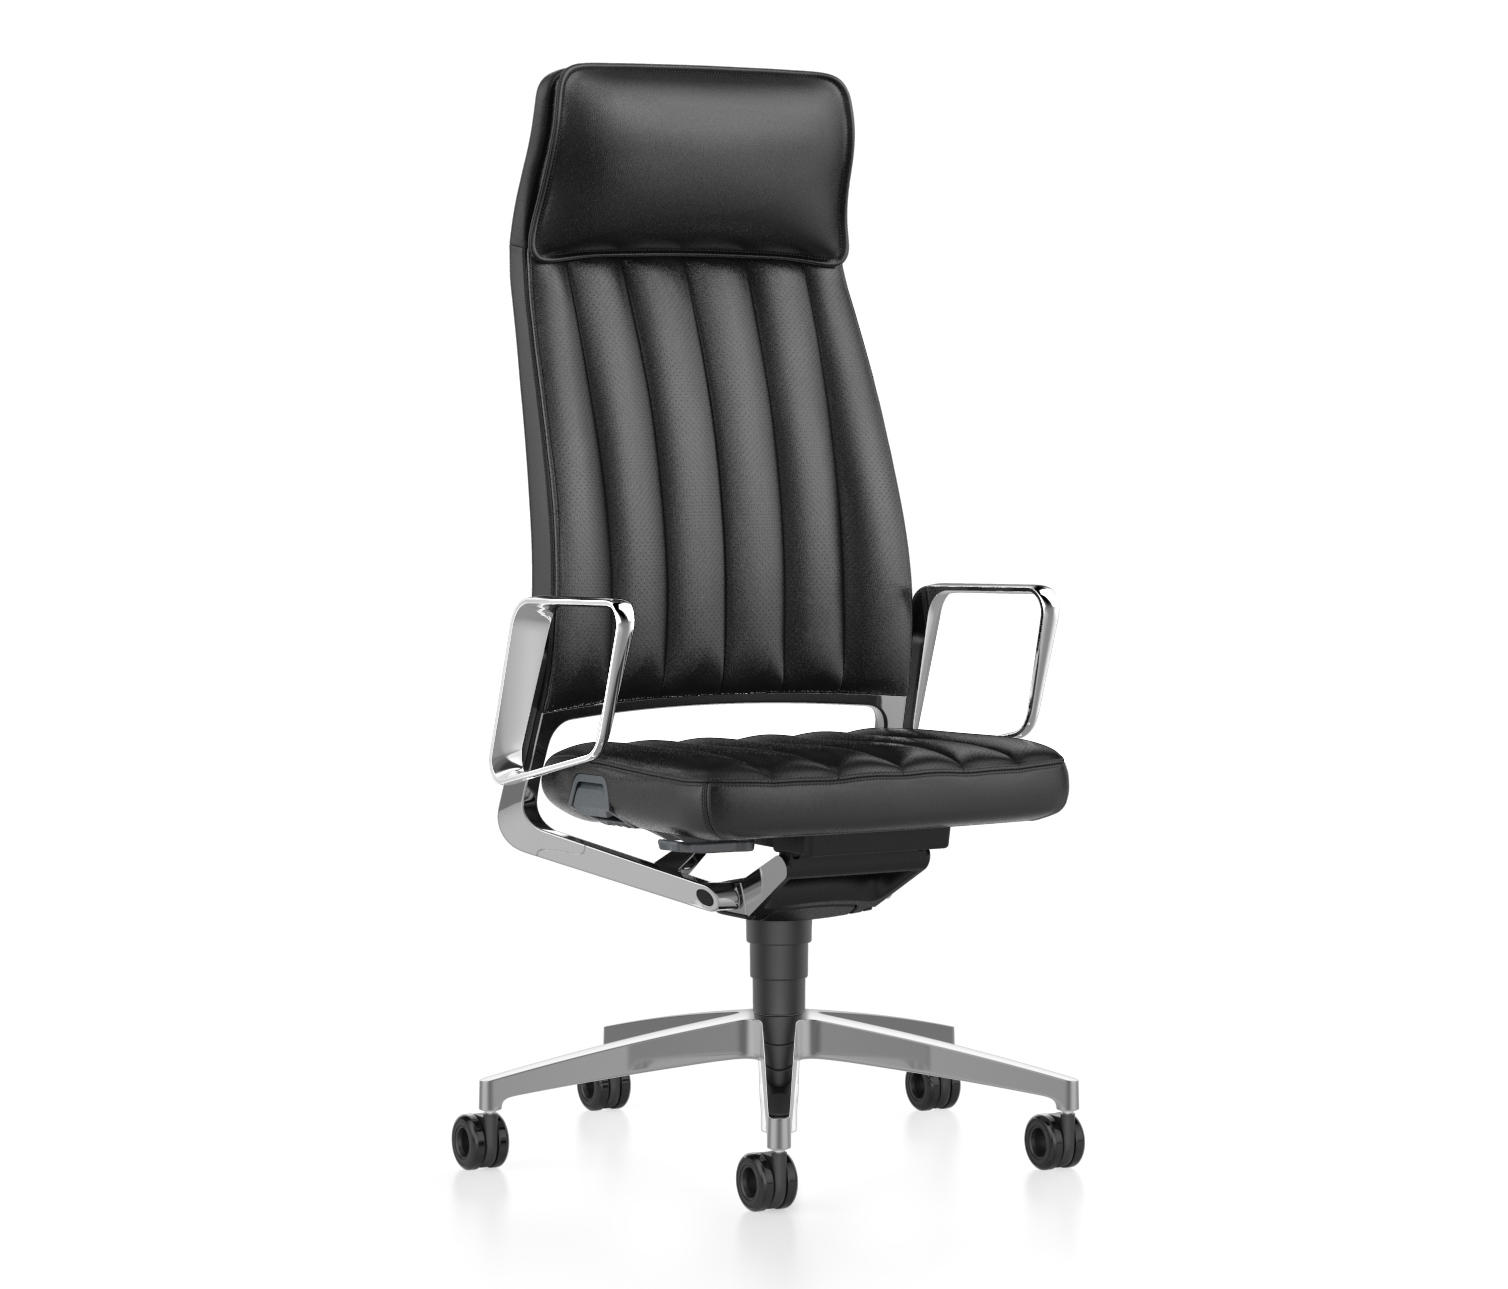 Kg Büromöbel Vintageis5 32v4 - Management Chairs From Interstuhl